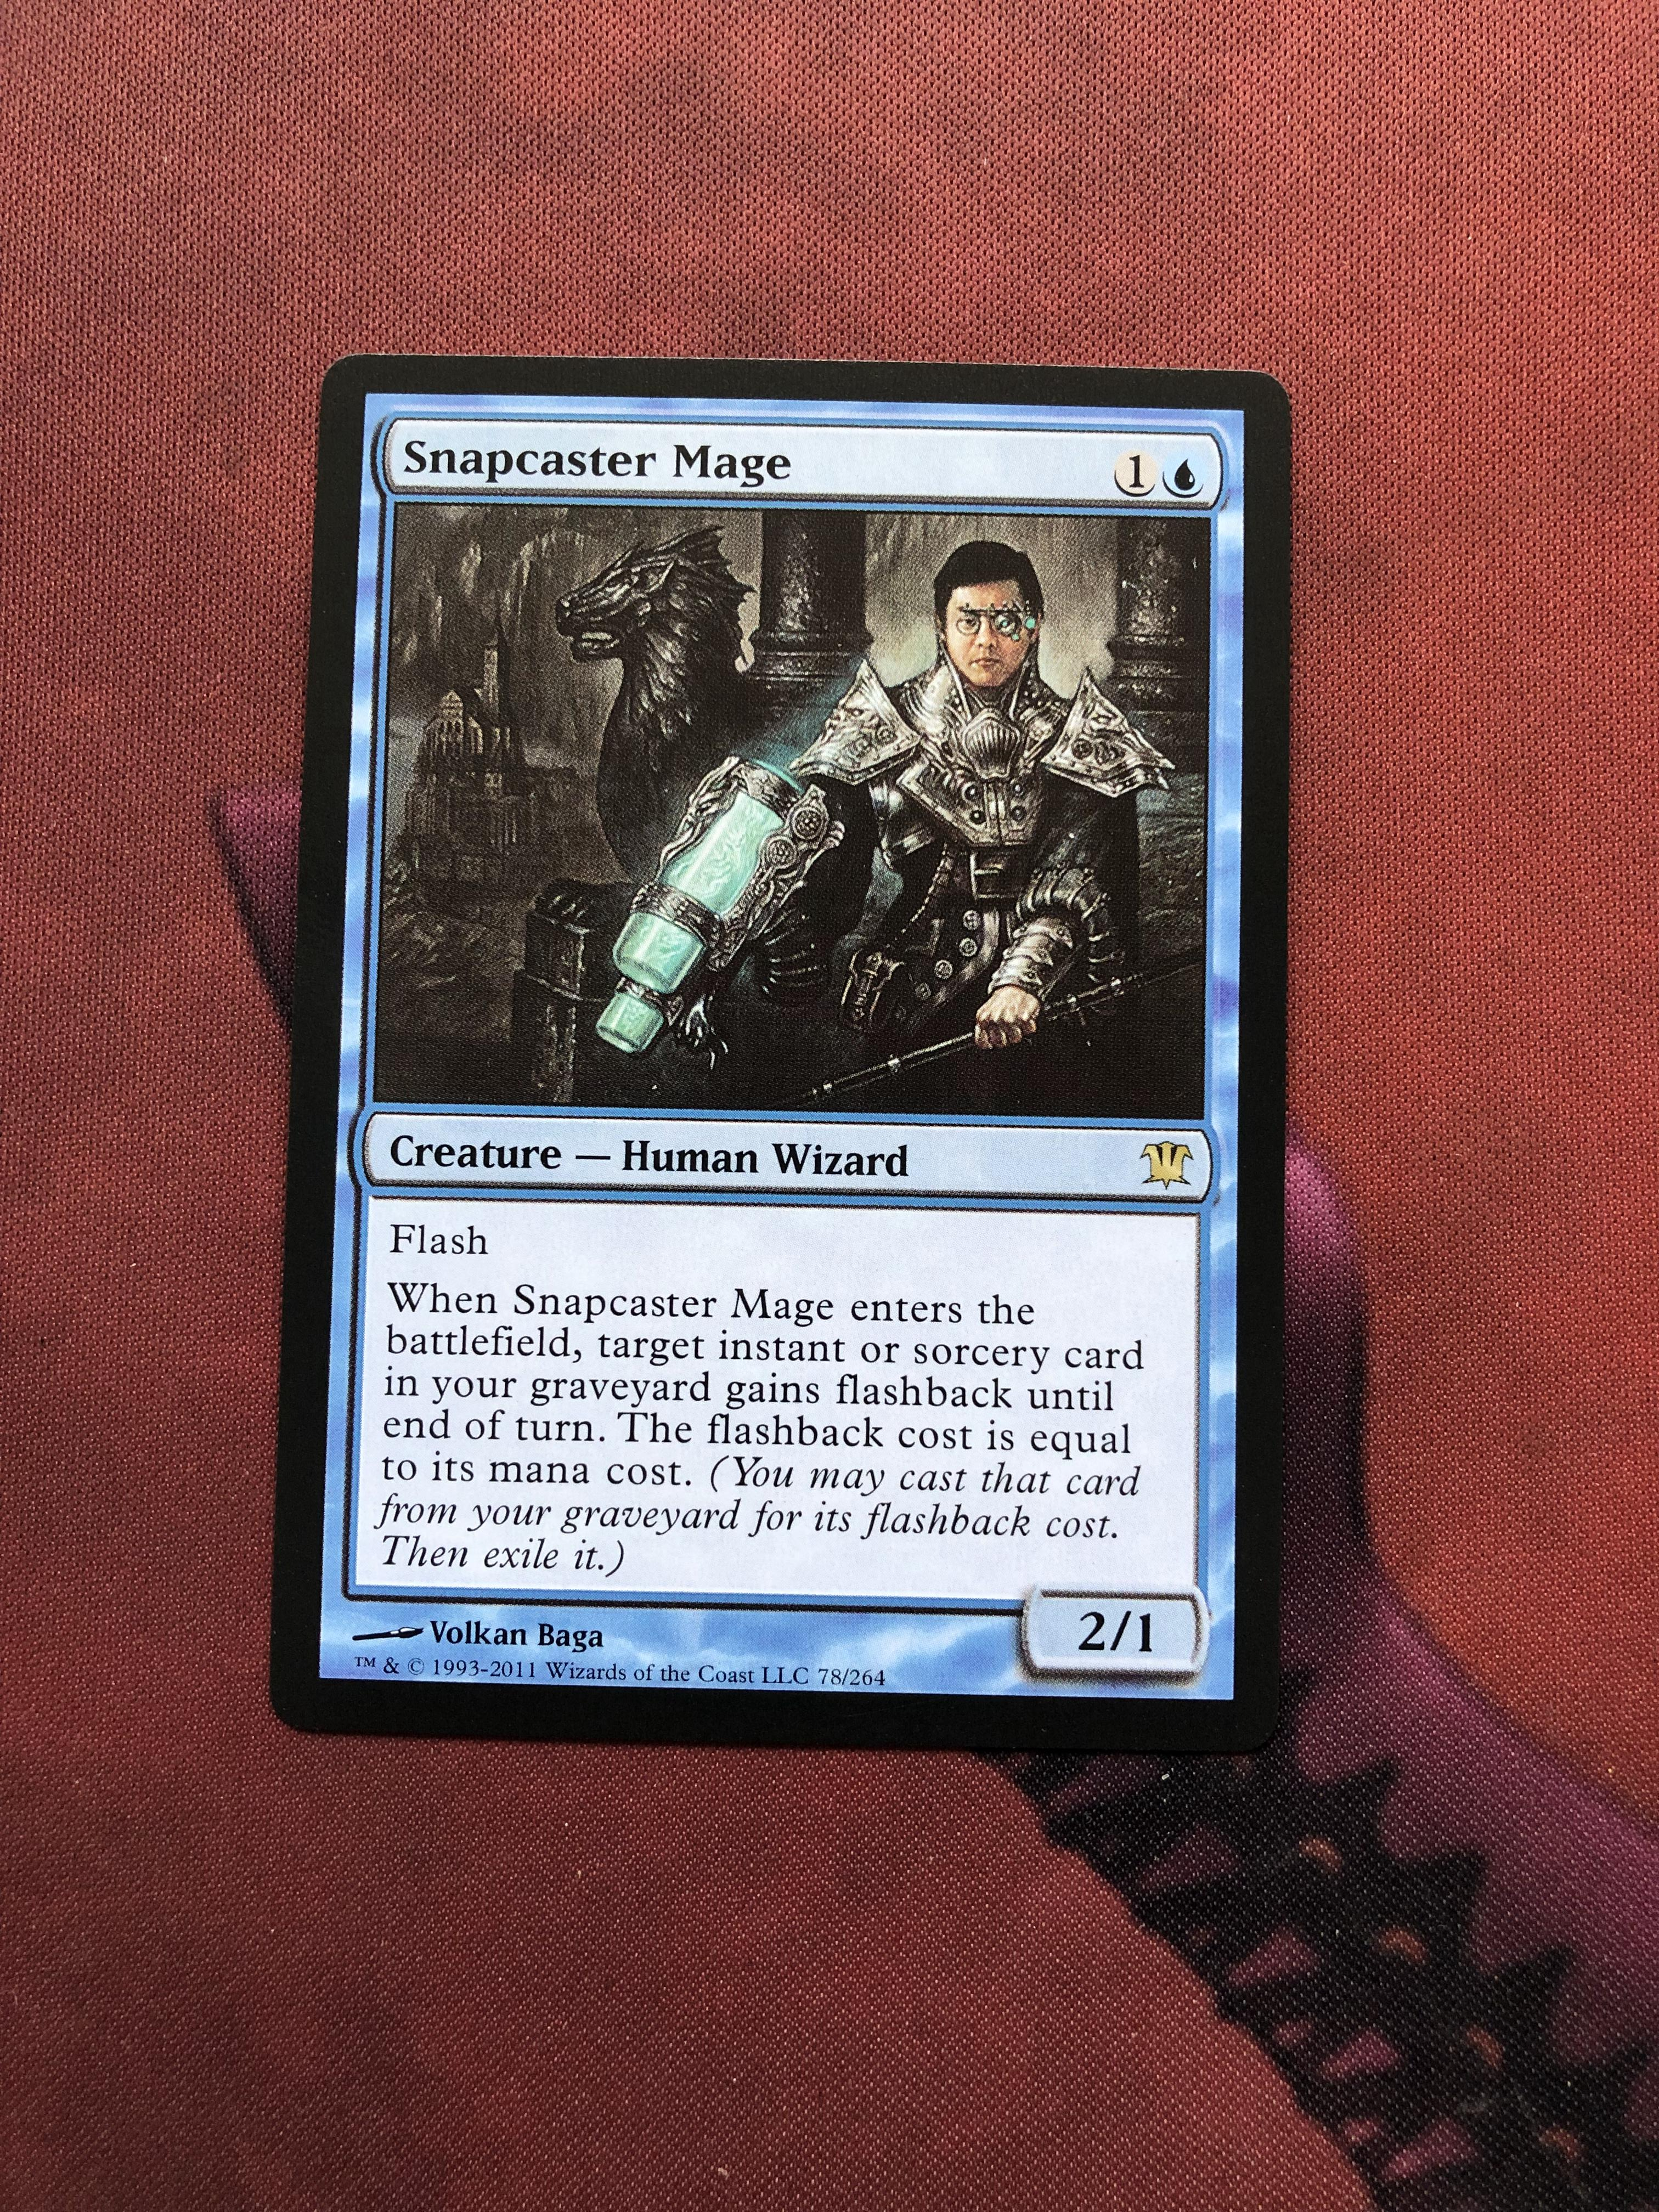 Snapcaster Mage Innistrad Magician ProxyKing 8.0 VIP The Proxy Cards To Gathering Every Single Mg Card.